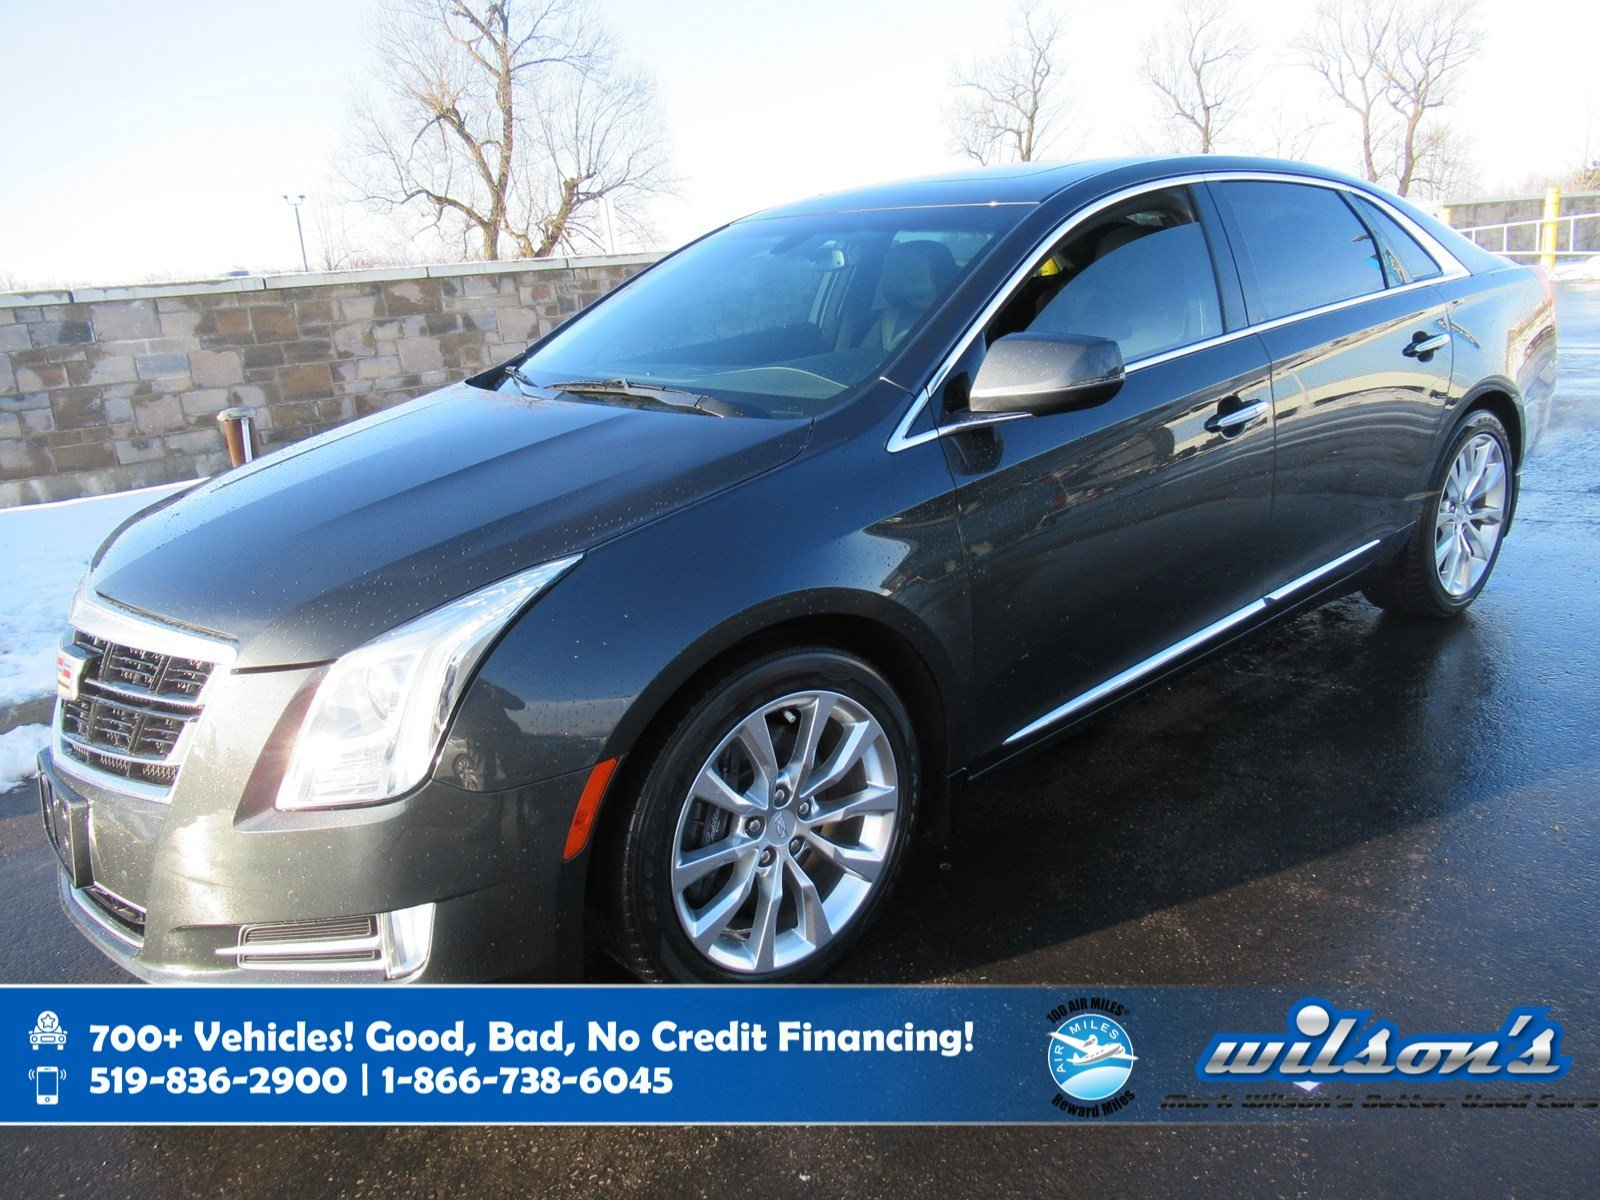 Certified Pre-Owned 2016 Cadillac XTS Luxury Collection AWD, Leather, Sunroof, Navigation, Heated Steering, Parking Sensors and more!